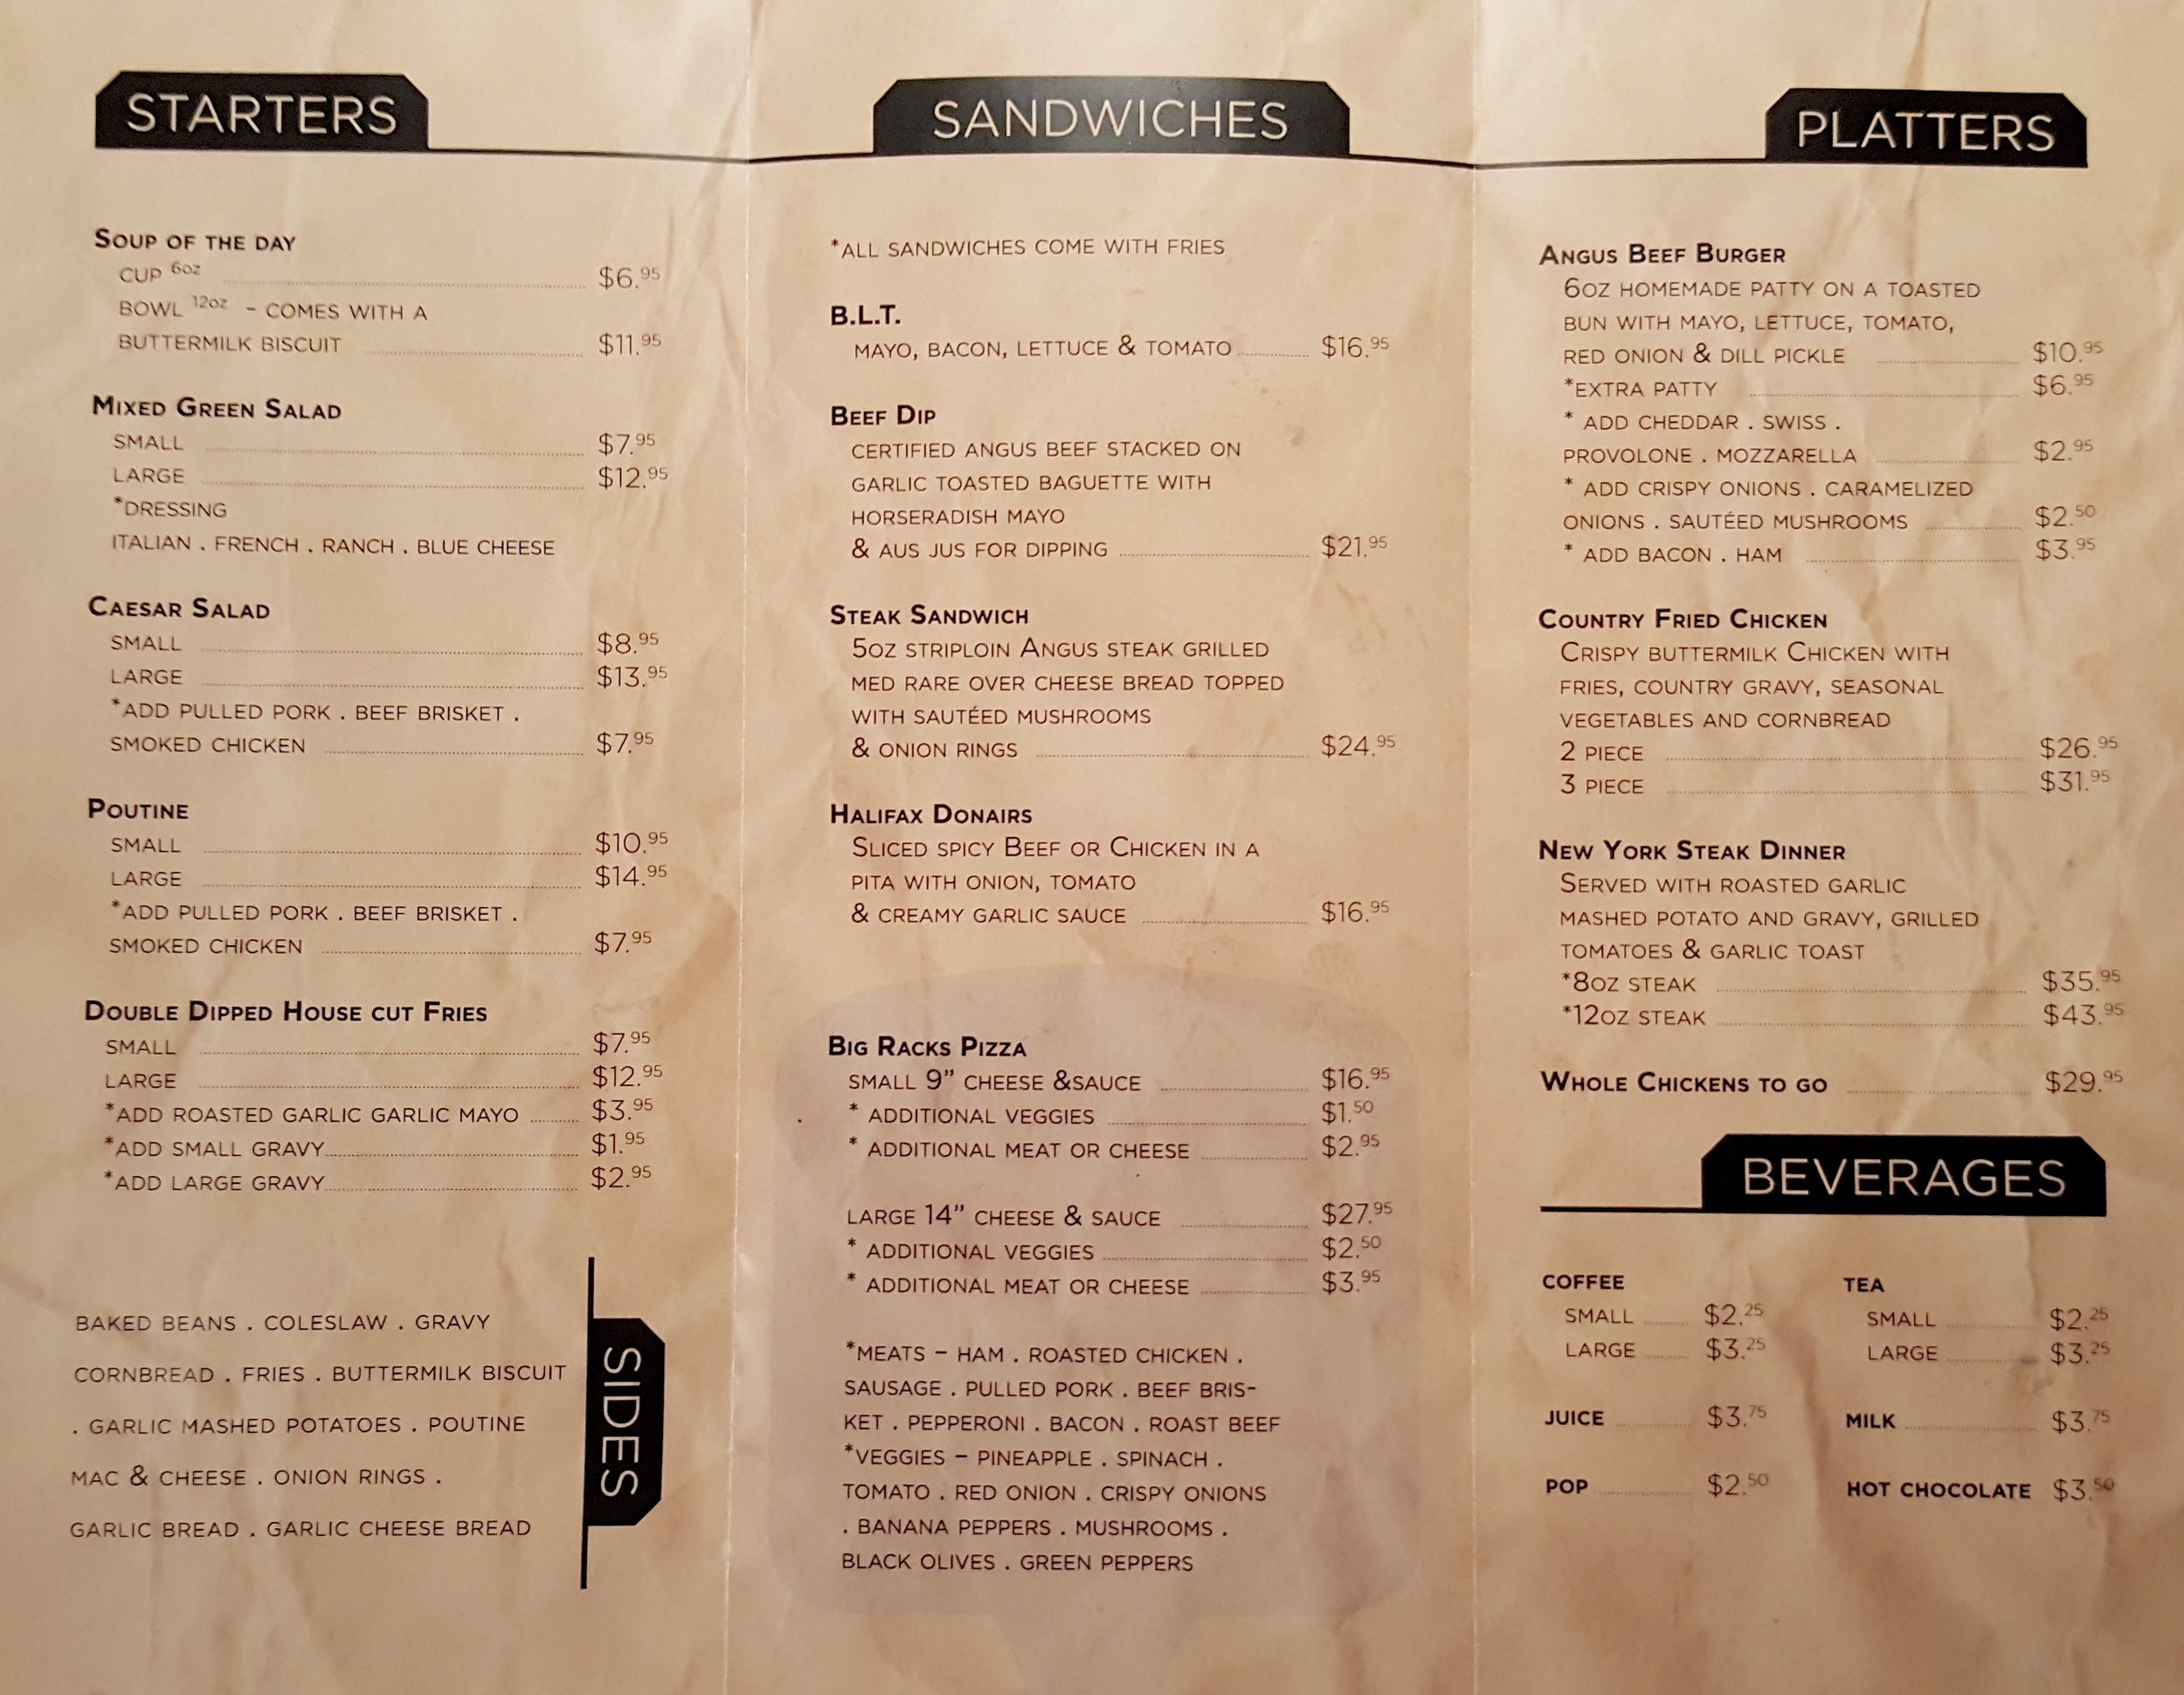 First Taste Big Racks Barbecue Iqaluit Menu And Review